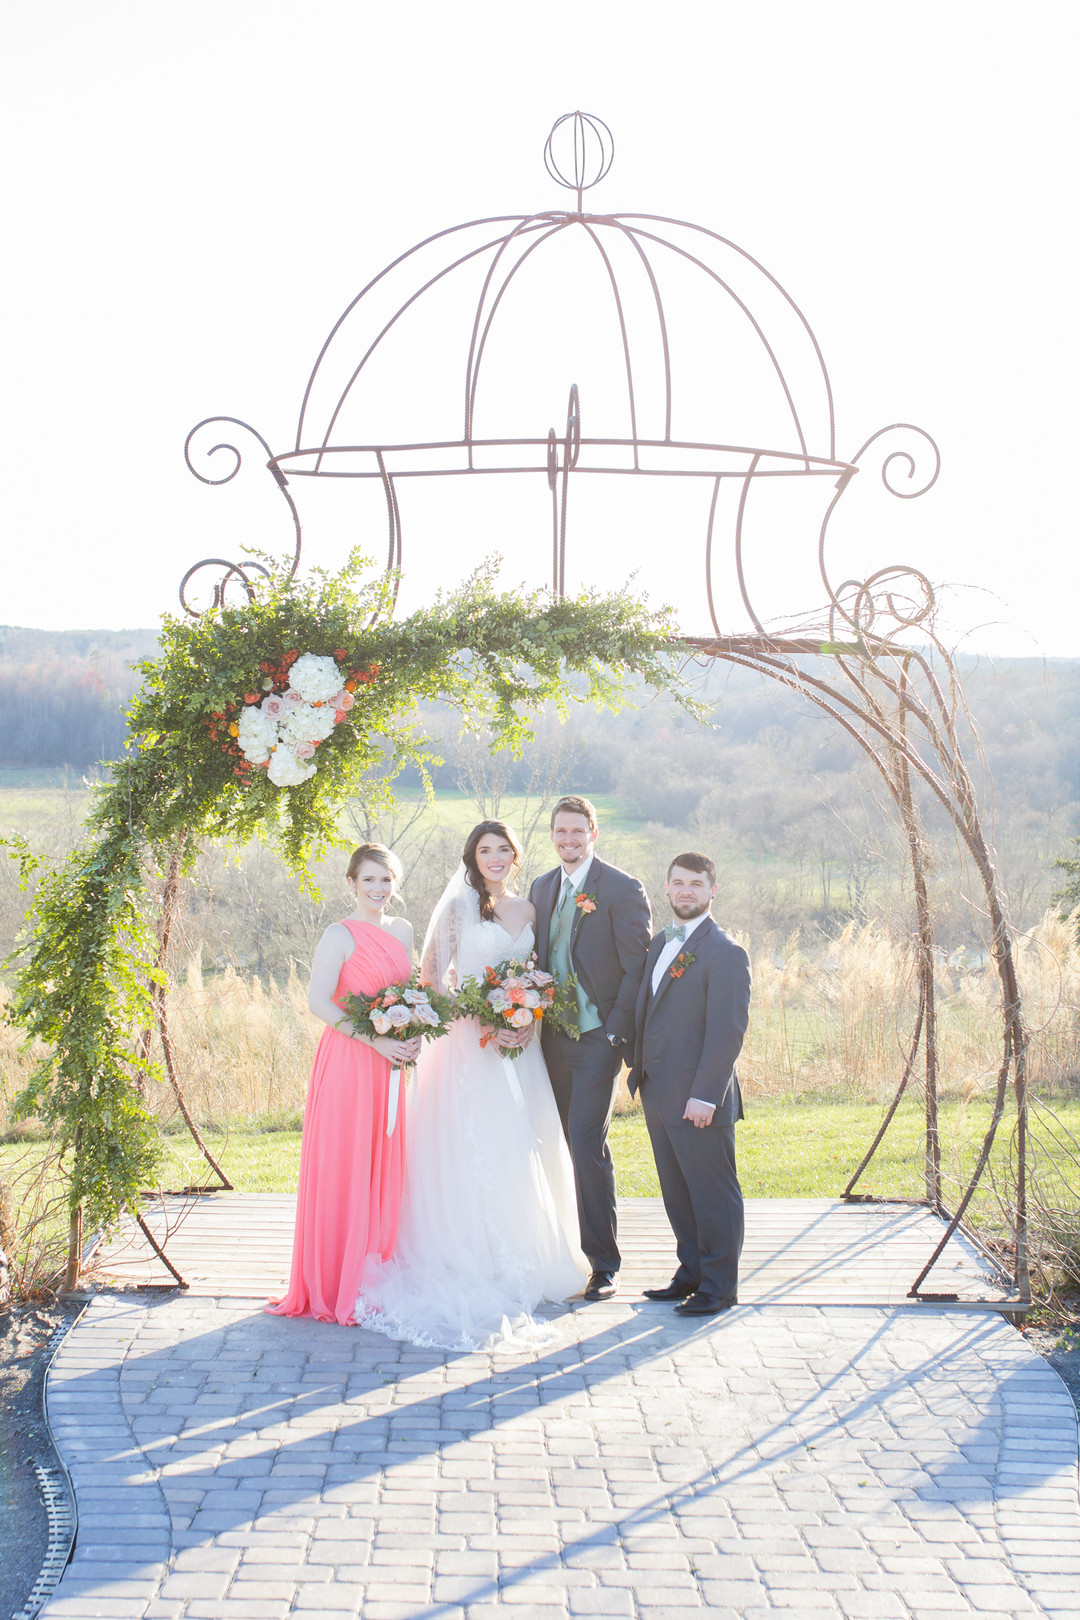 Coral Sunset Wedding in North Carolina – Him & Her Photography